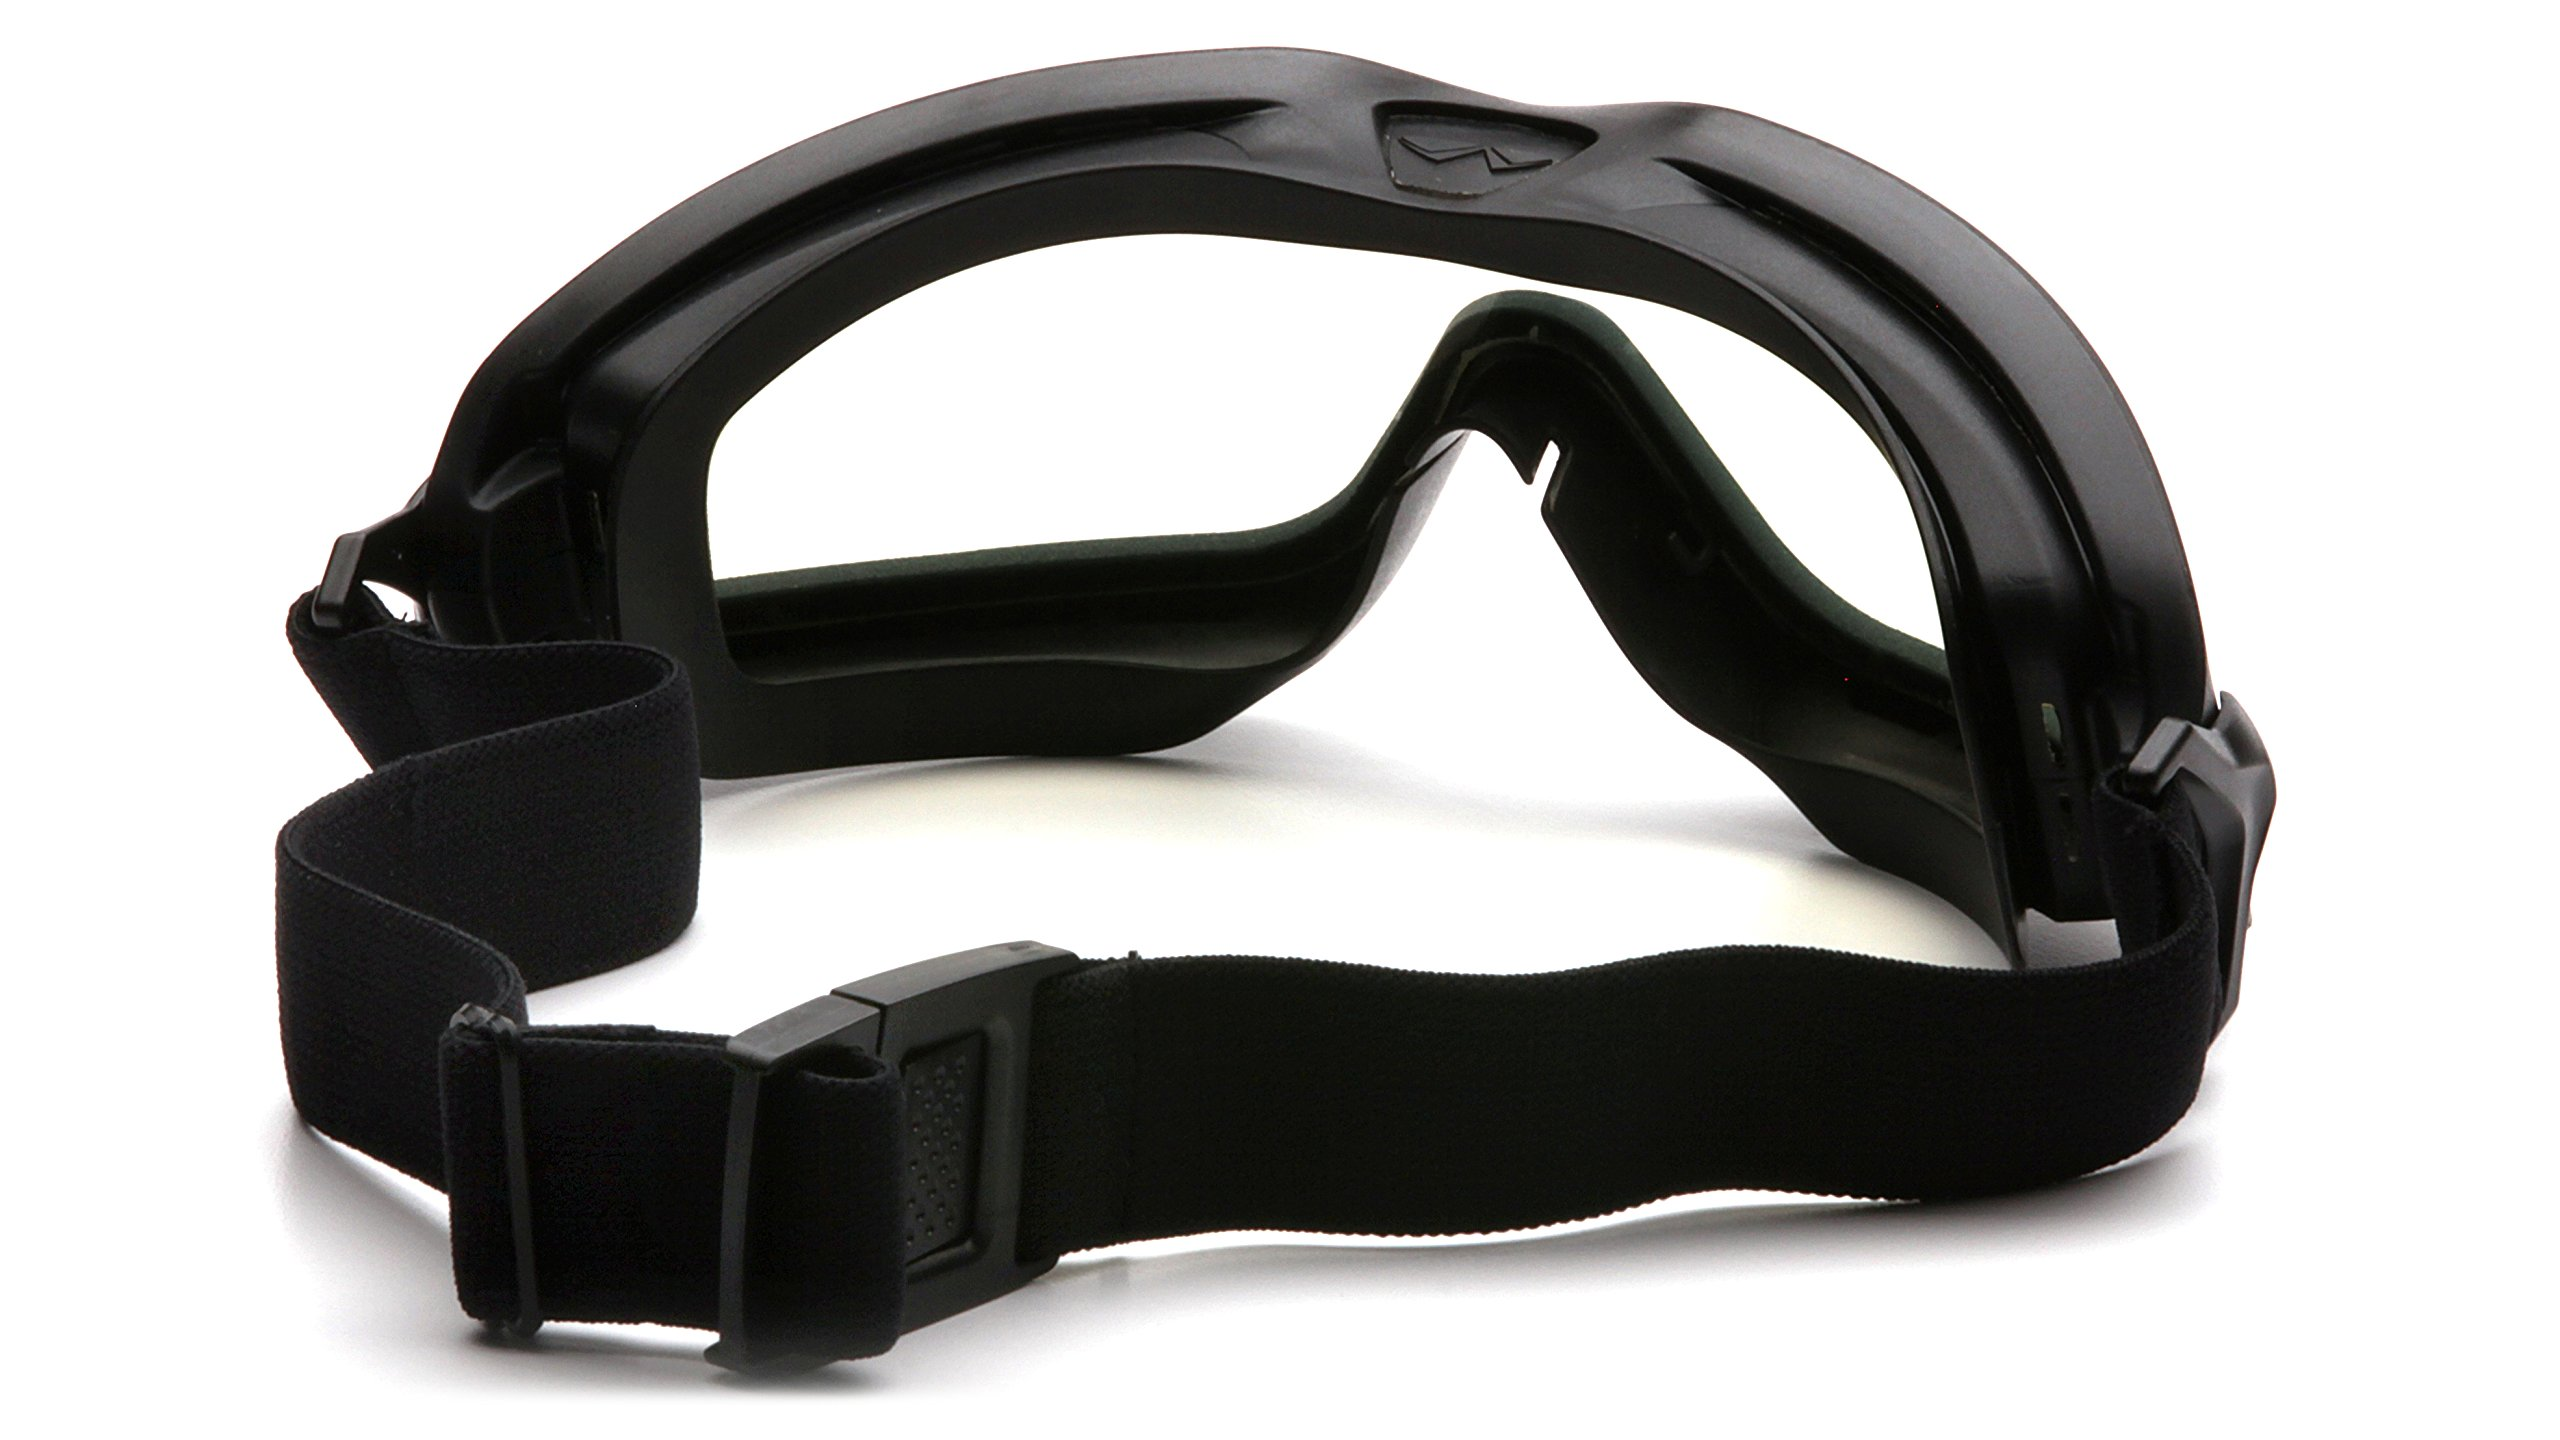 Pyramex V2G Safety Goggles with Adjustable Strap, Black Frame, Dual Clear H2X Anti-Fog Lens by Pyramex Safety (Image #3)